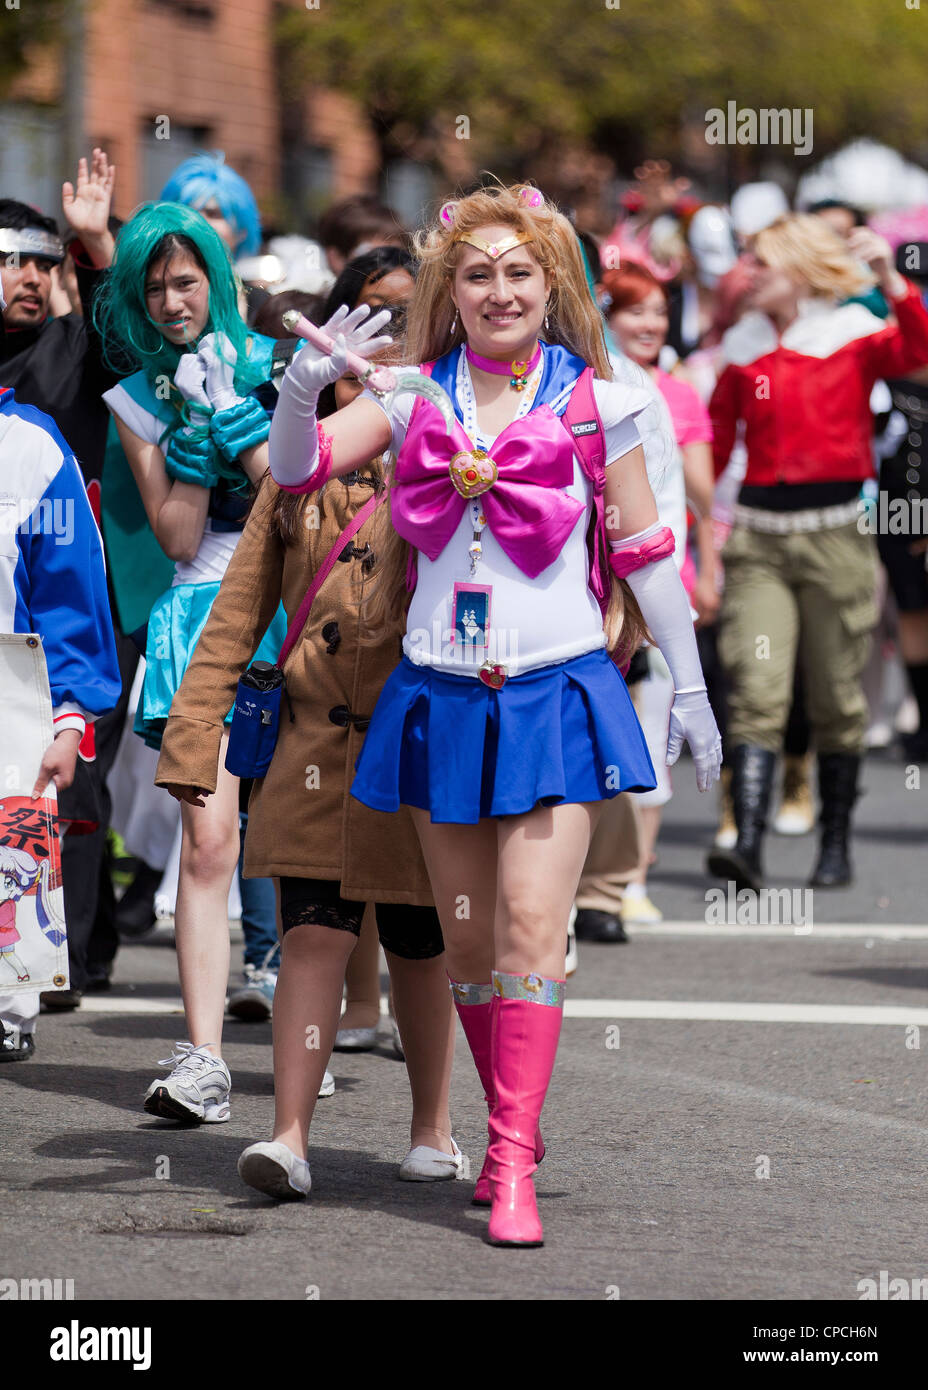 Caucasian woman in Sailor Moon costume in cosplay - San Francisco, California USA - Stock Image